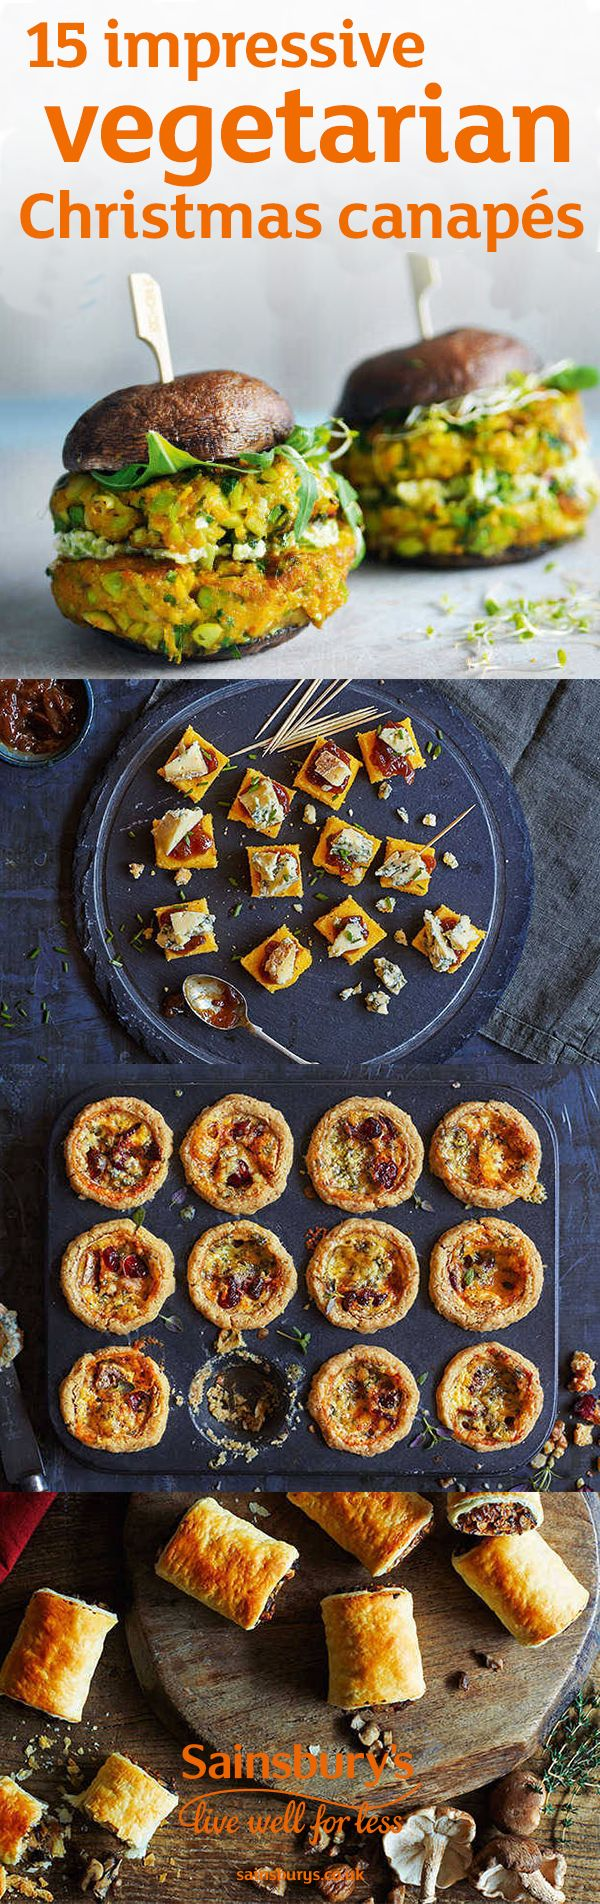 These 15 impressive Christmas canapés and party food recipes celebrate the very best of vegetarian cooking. From polenta bites to beetroot fritters and dips, there's no need to leave the veggies fighting over the last cheese straw this Christmas. No Christmas party is complete without Halloumi chips and we've even go a recipe for vegetarian mushroom sausage rolls. Delicious